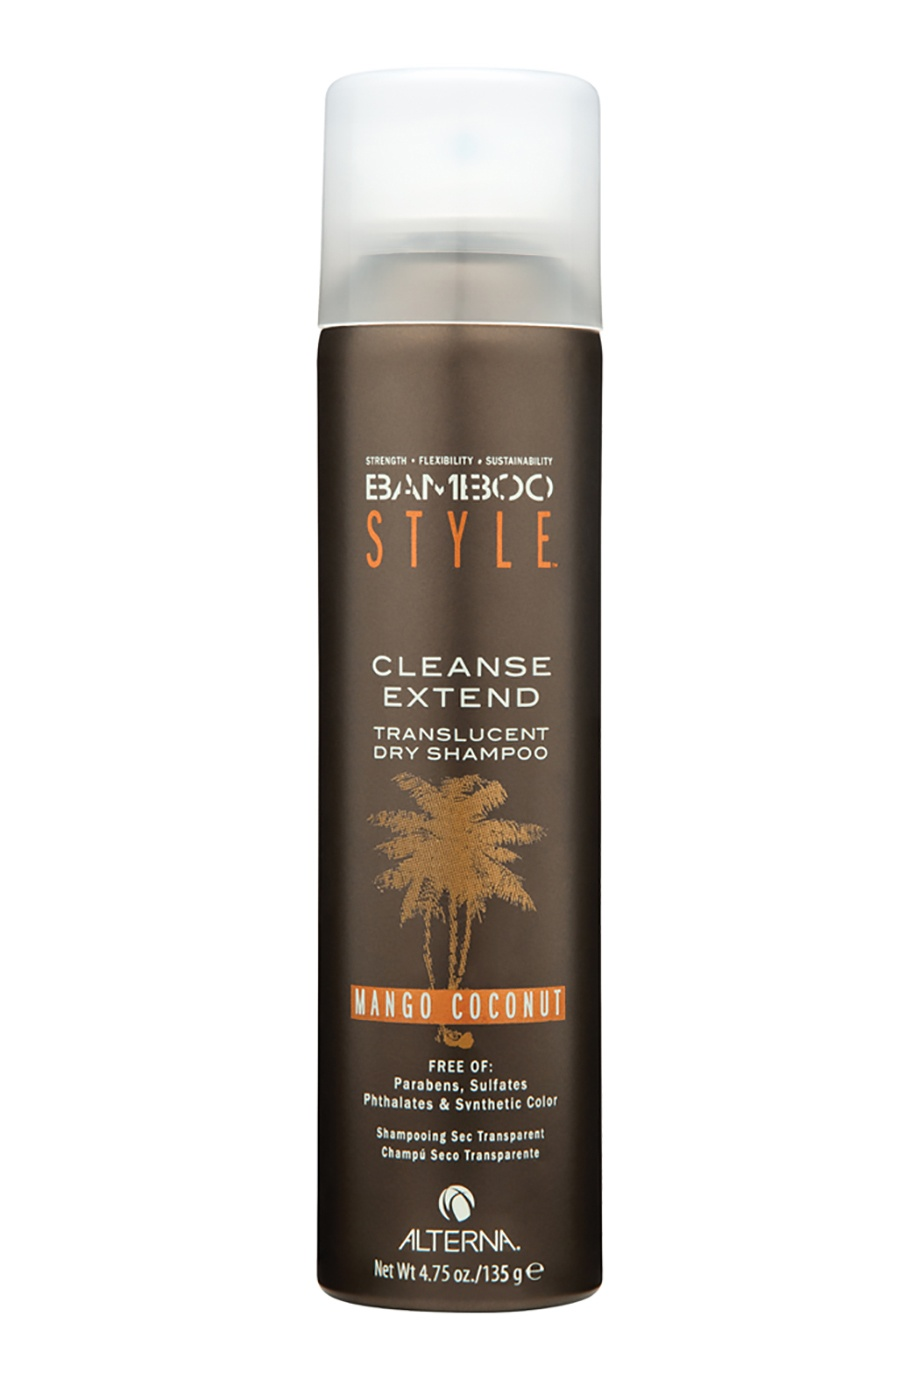 Сухой шампунь Bamboo Style Cleanse Extend Mango Coconut 150ml Alterna (фото)